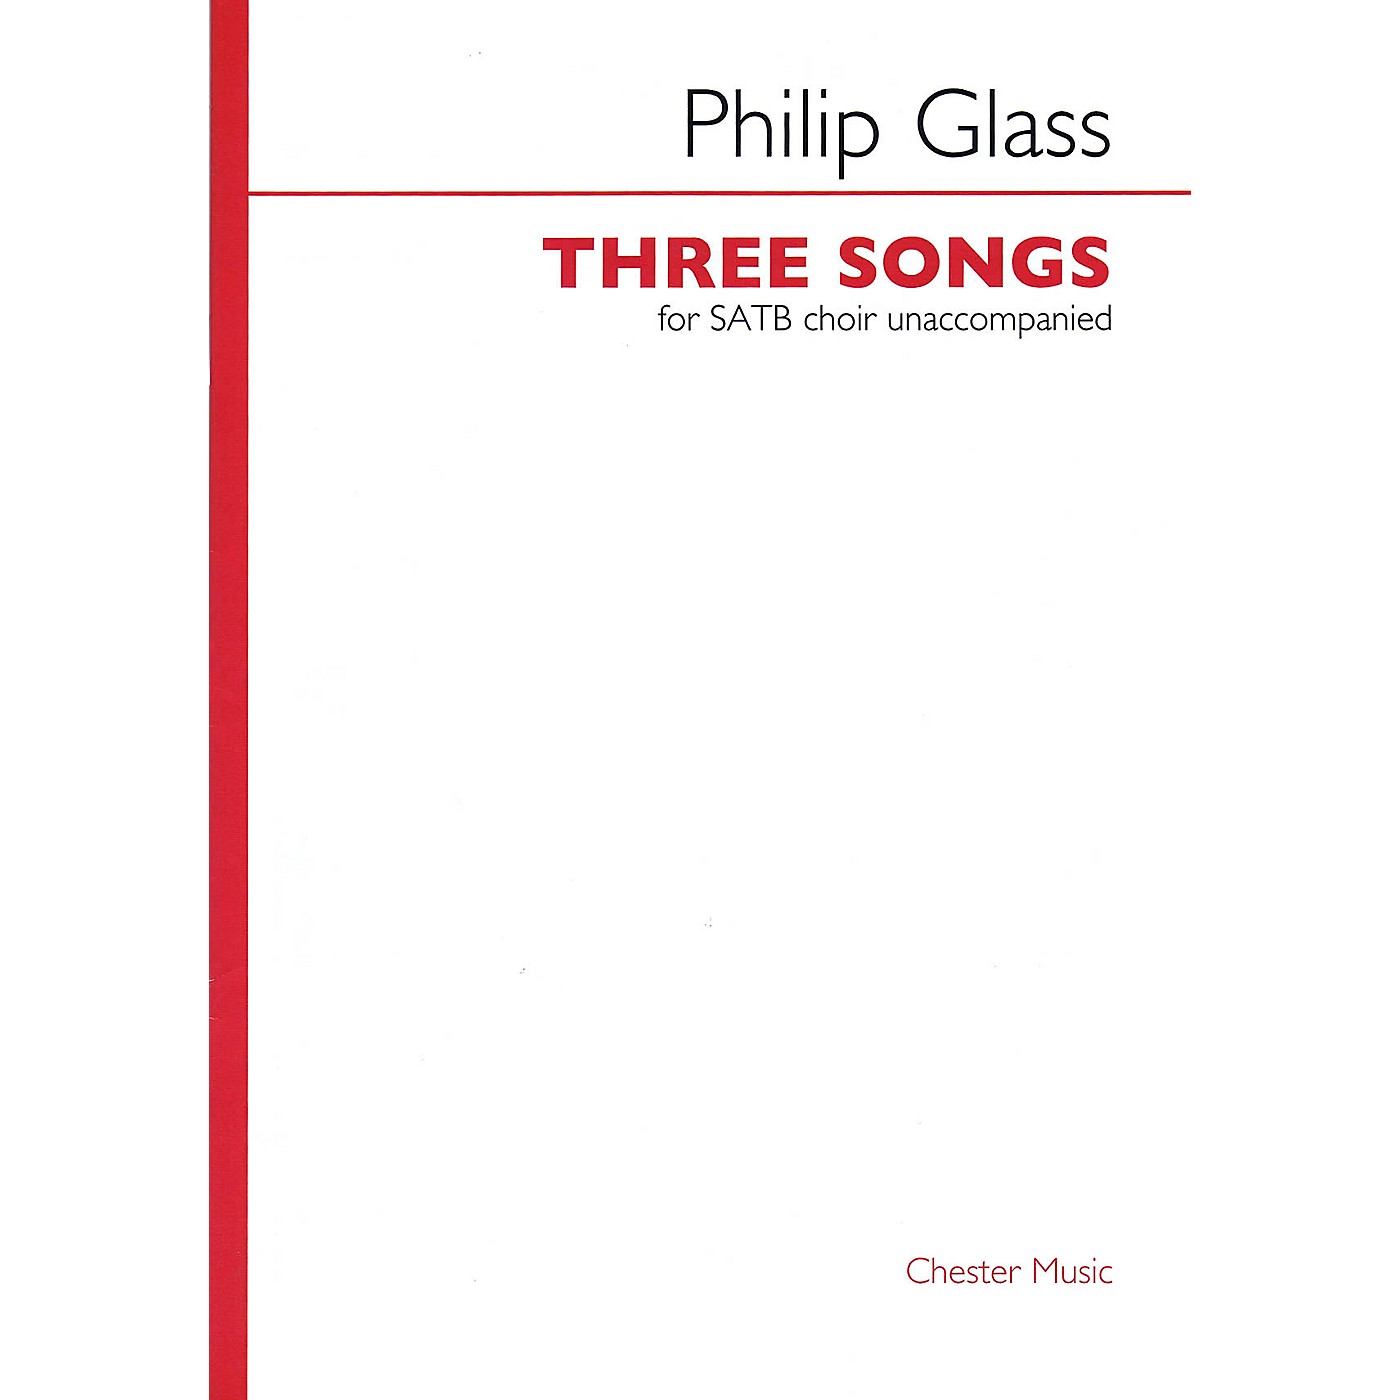 Chester Music Three Songs (for SATB unaccompanied choir) SATB a cappella Composed by Philip Glass thumbnail